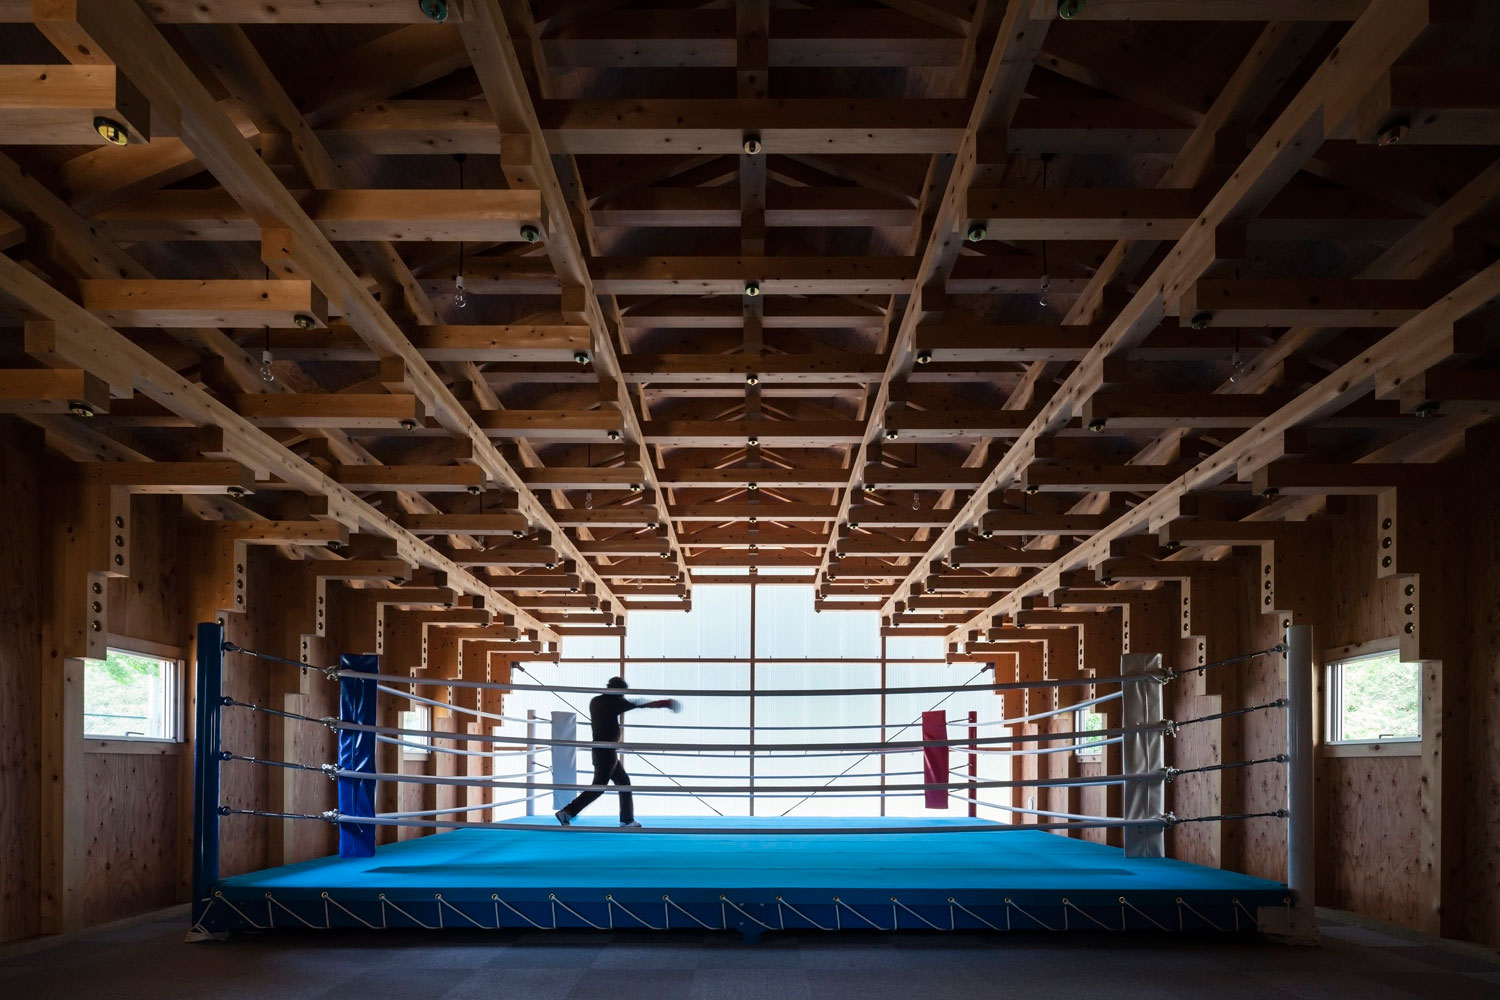 Archery Hall & Boxing Club by FT Architects | Yellowtrace